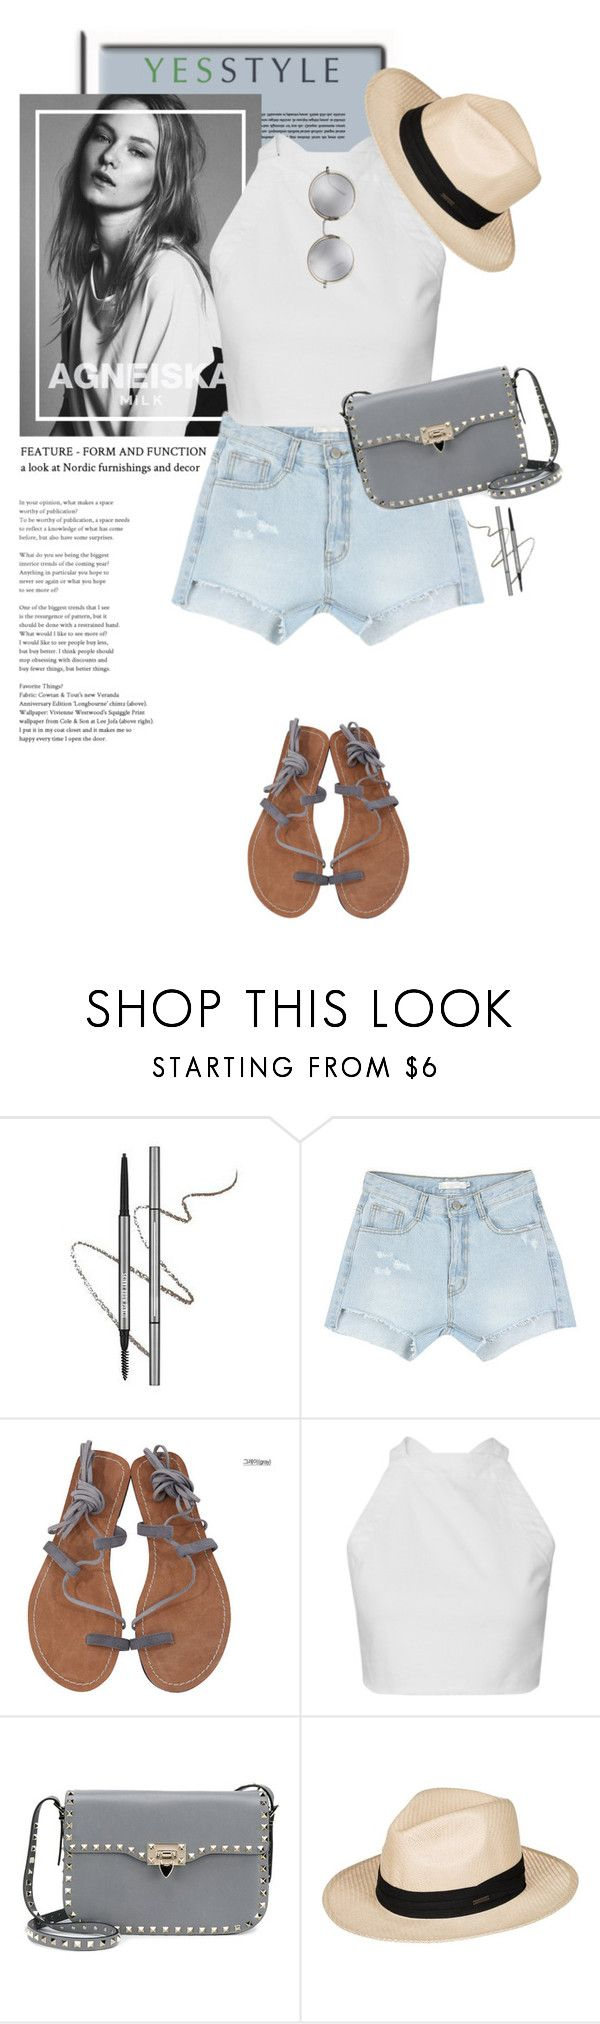 """YESSTYLE.com"" by monmondefou ❤ liked on Polyvore featuring Chlo.D.Manon, Valentino, Roxy, Linda Farrow, Summer and yesstyle"